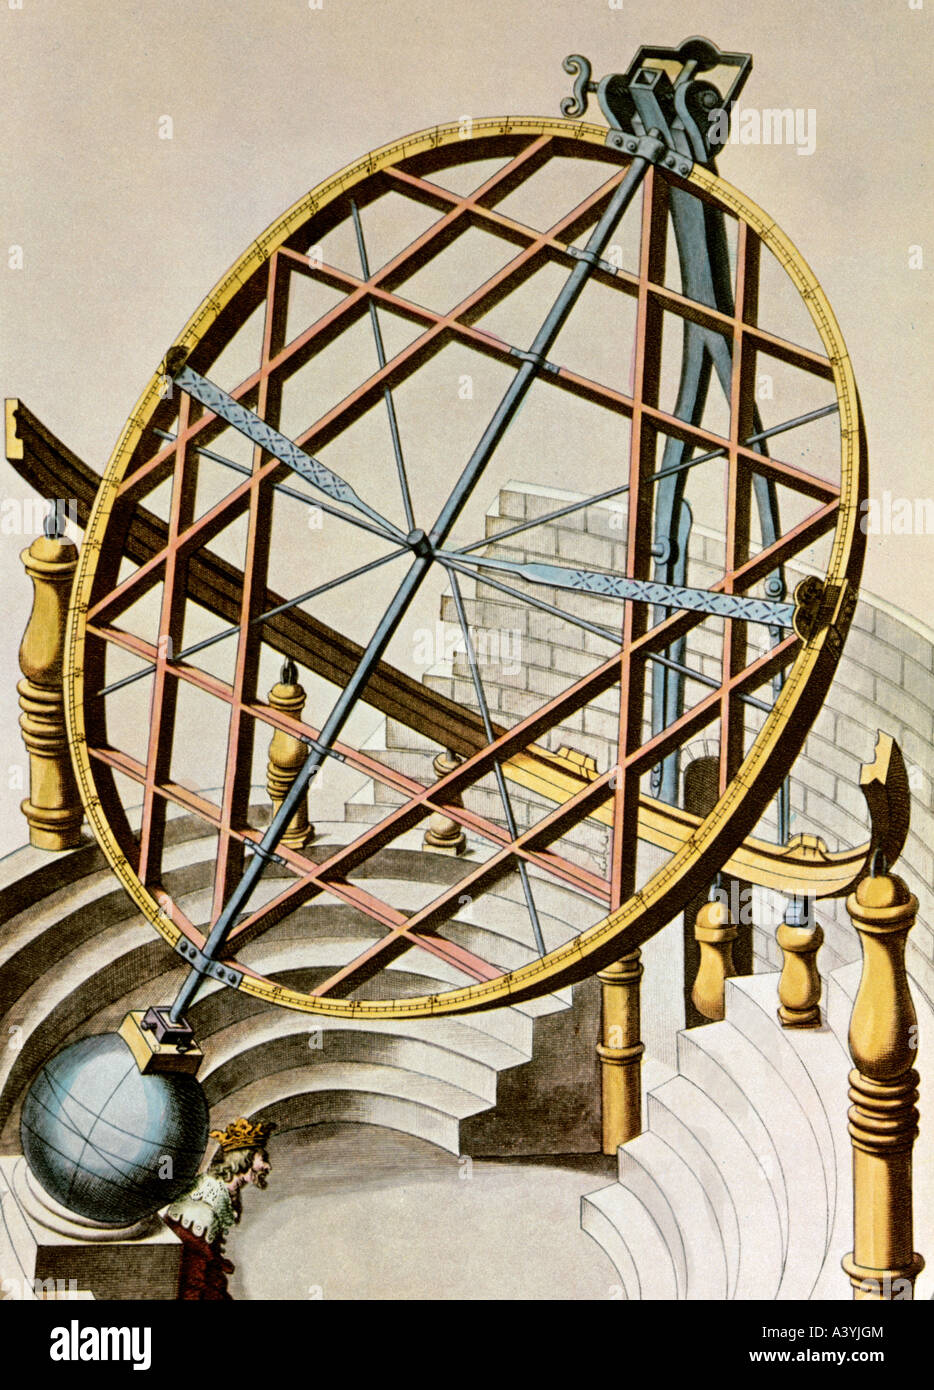 astronomy, measuring instruments, armillary sphere of Tycho Brahe (1546 - 1601), from 'Stjerneborg' observatory, - Stock Image